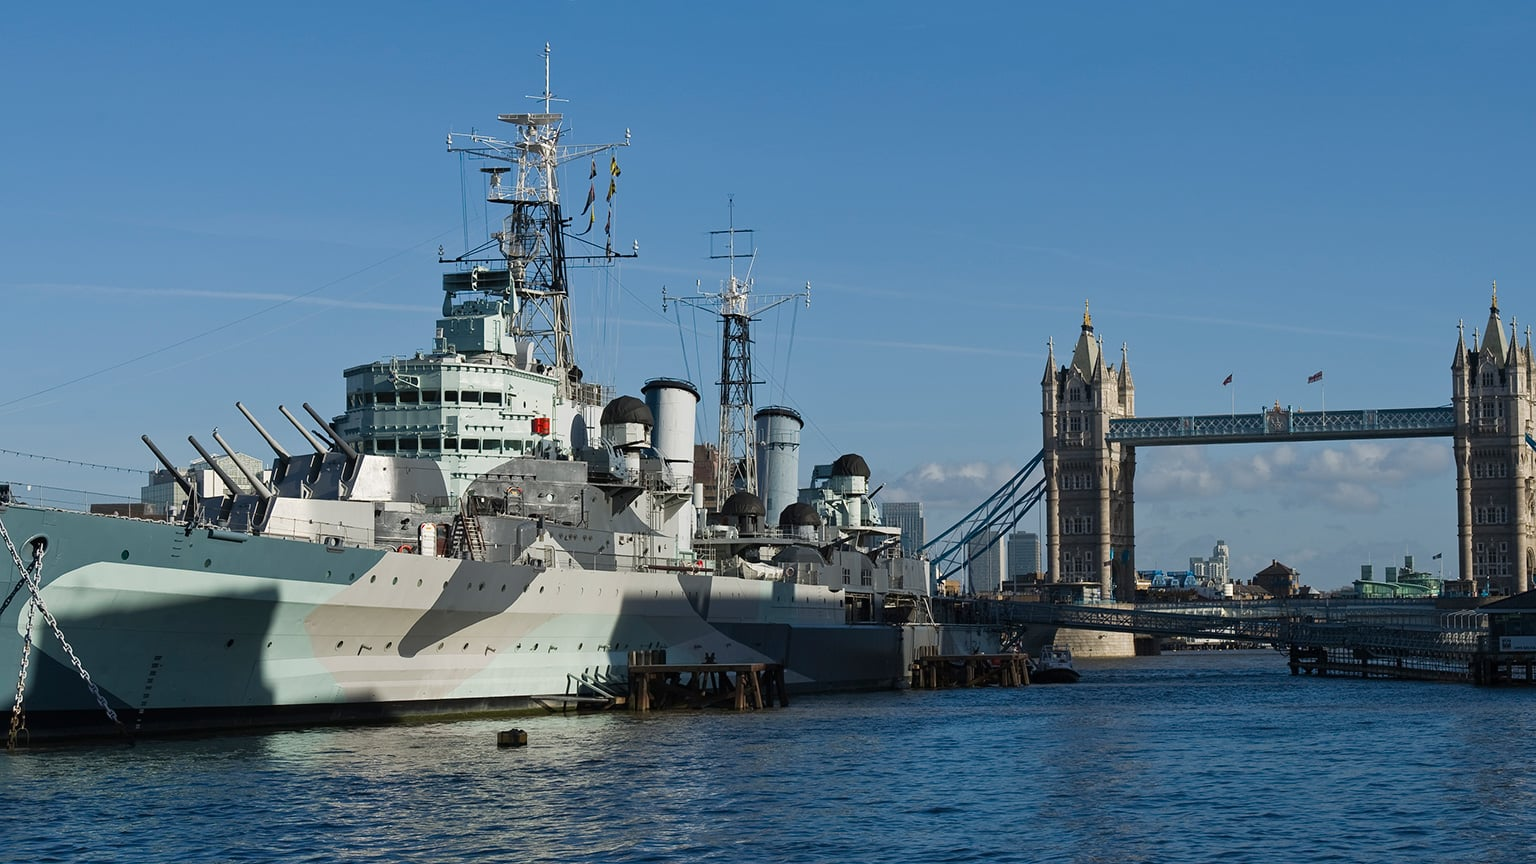 2. HMS Belfast, London. 50% off entry with National Art Pass - External of HMS Belfast on the River Thames